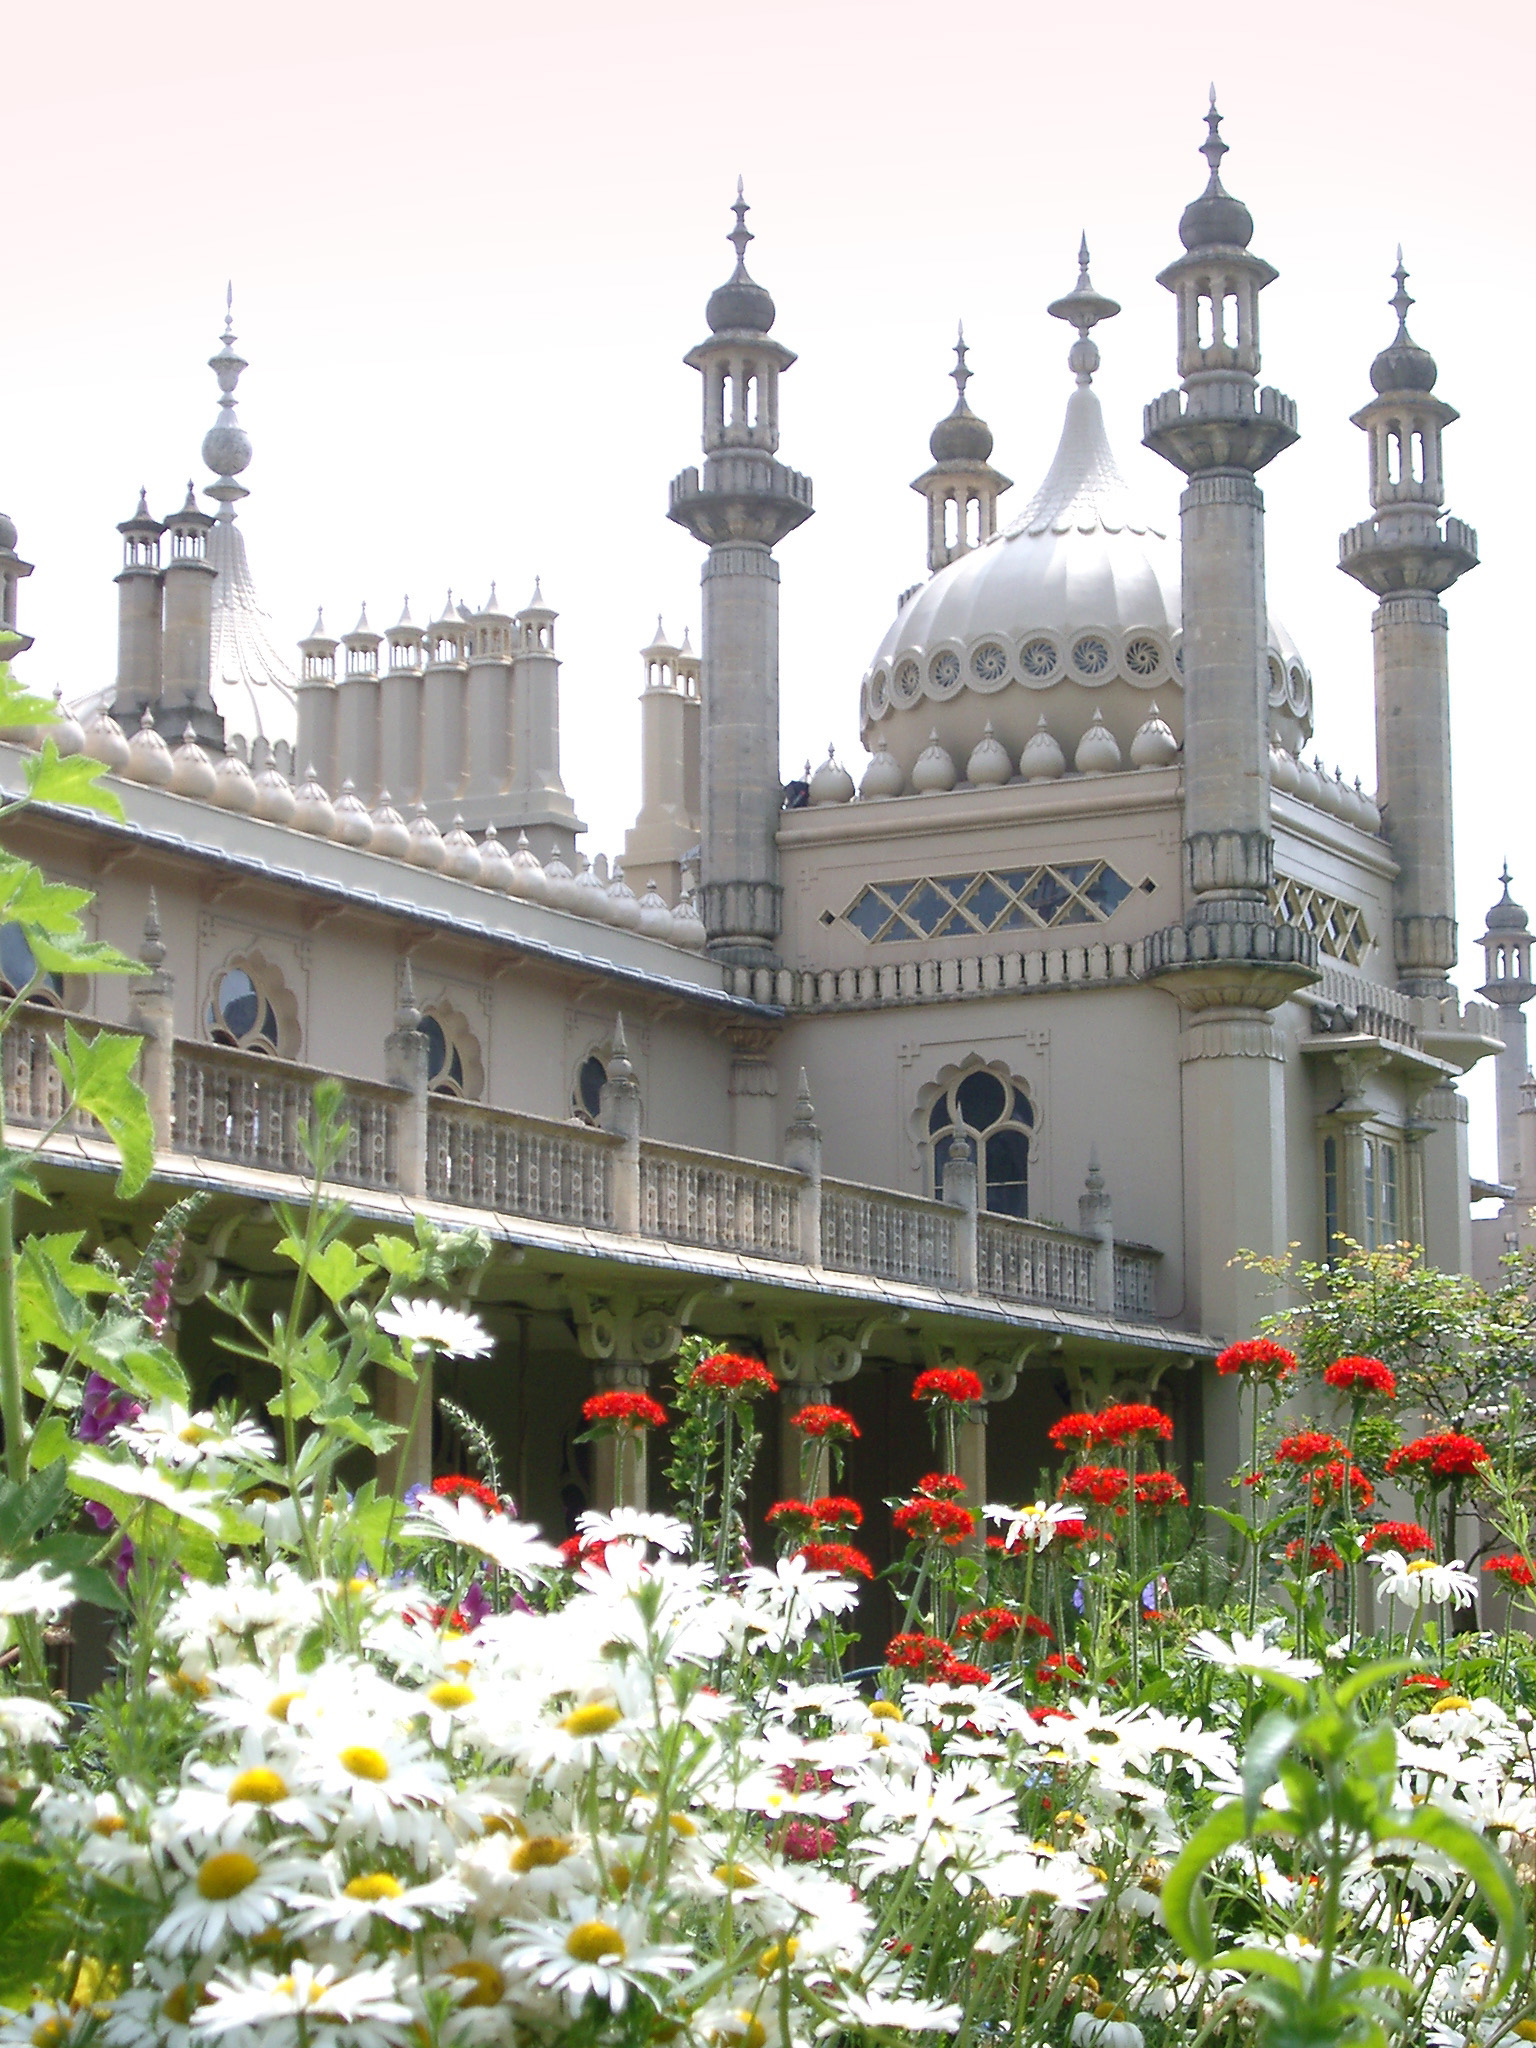 Onion dome and minarets of the Brighton Royal Pavilion viewed across a bed of summer flowers with white daisies in the foreground